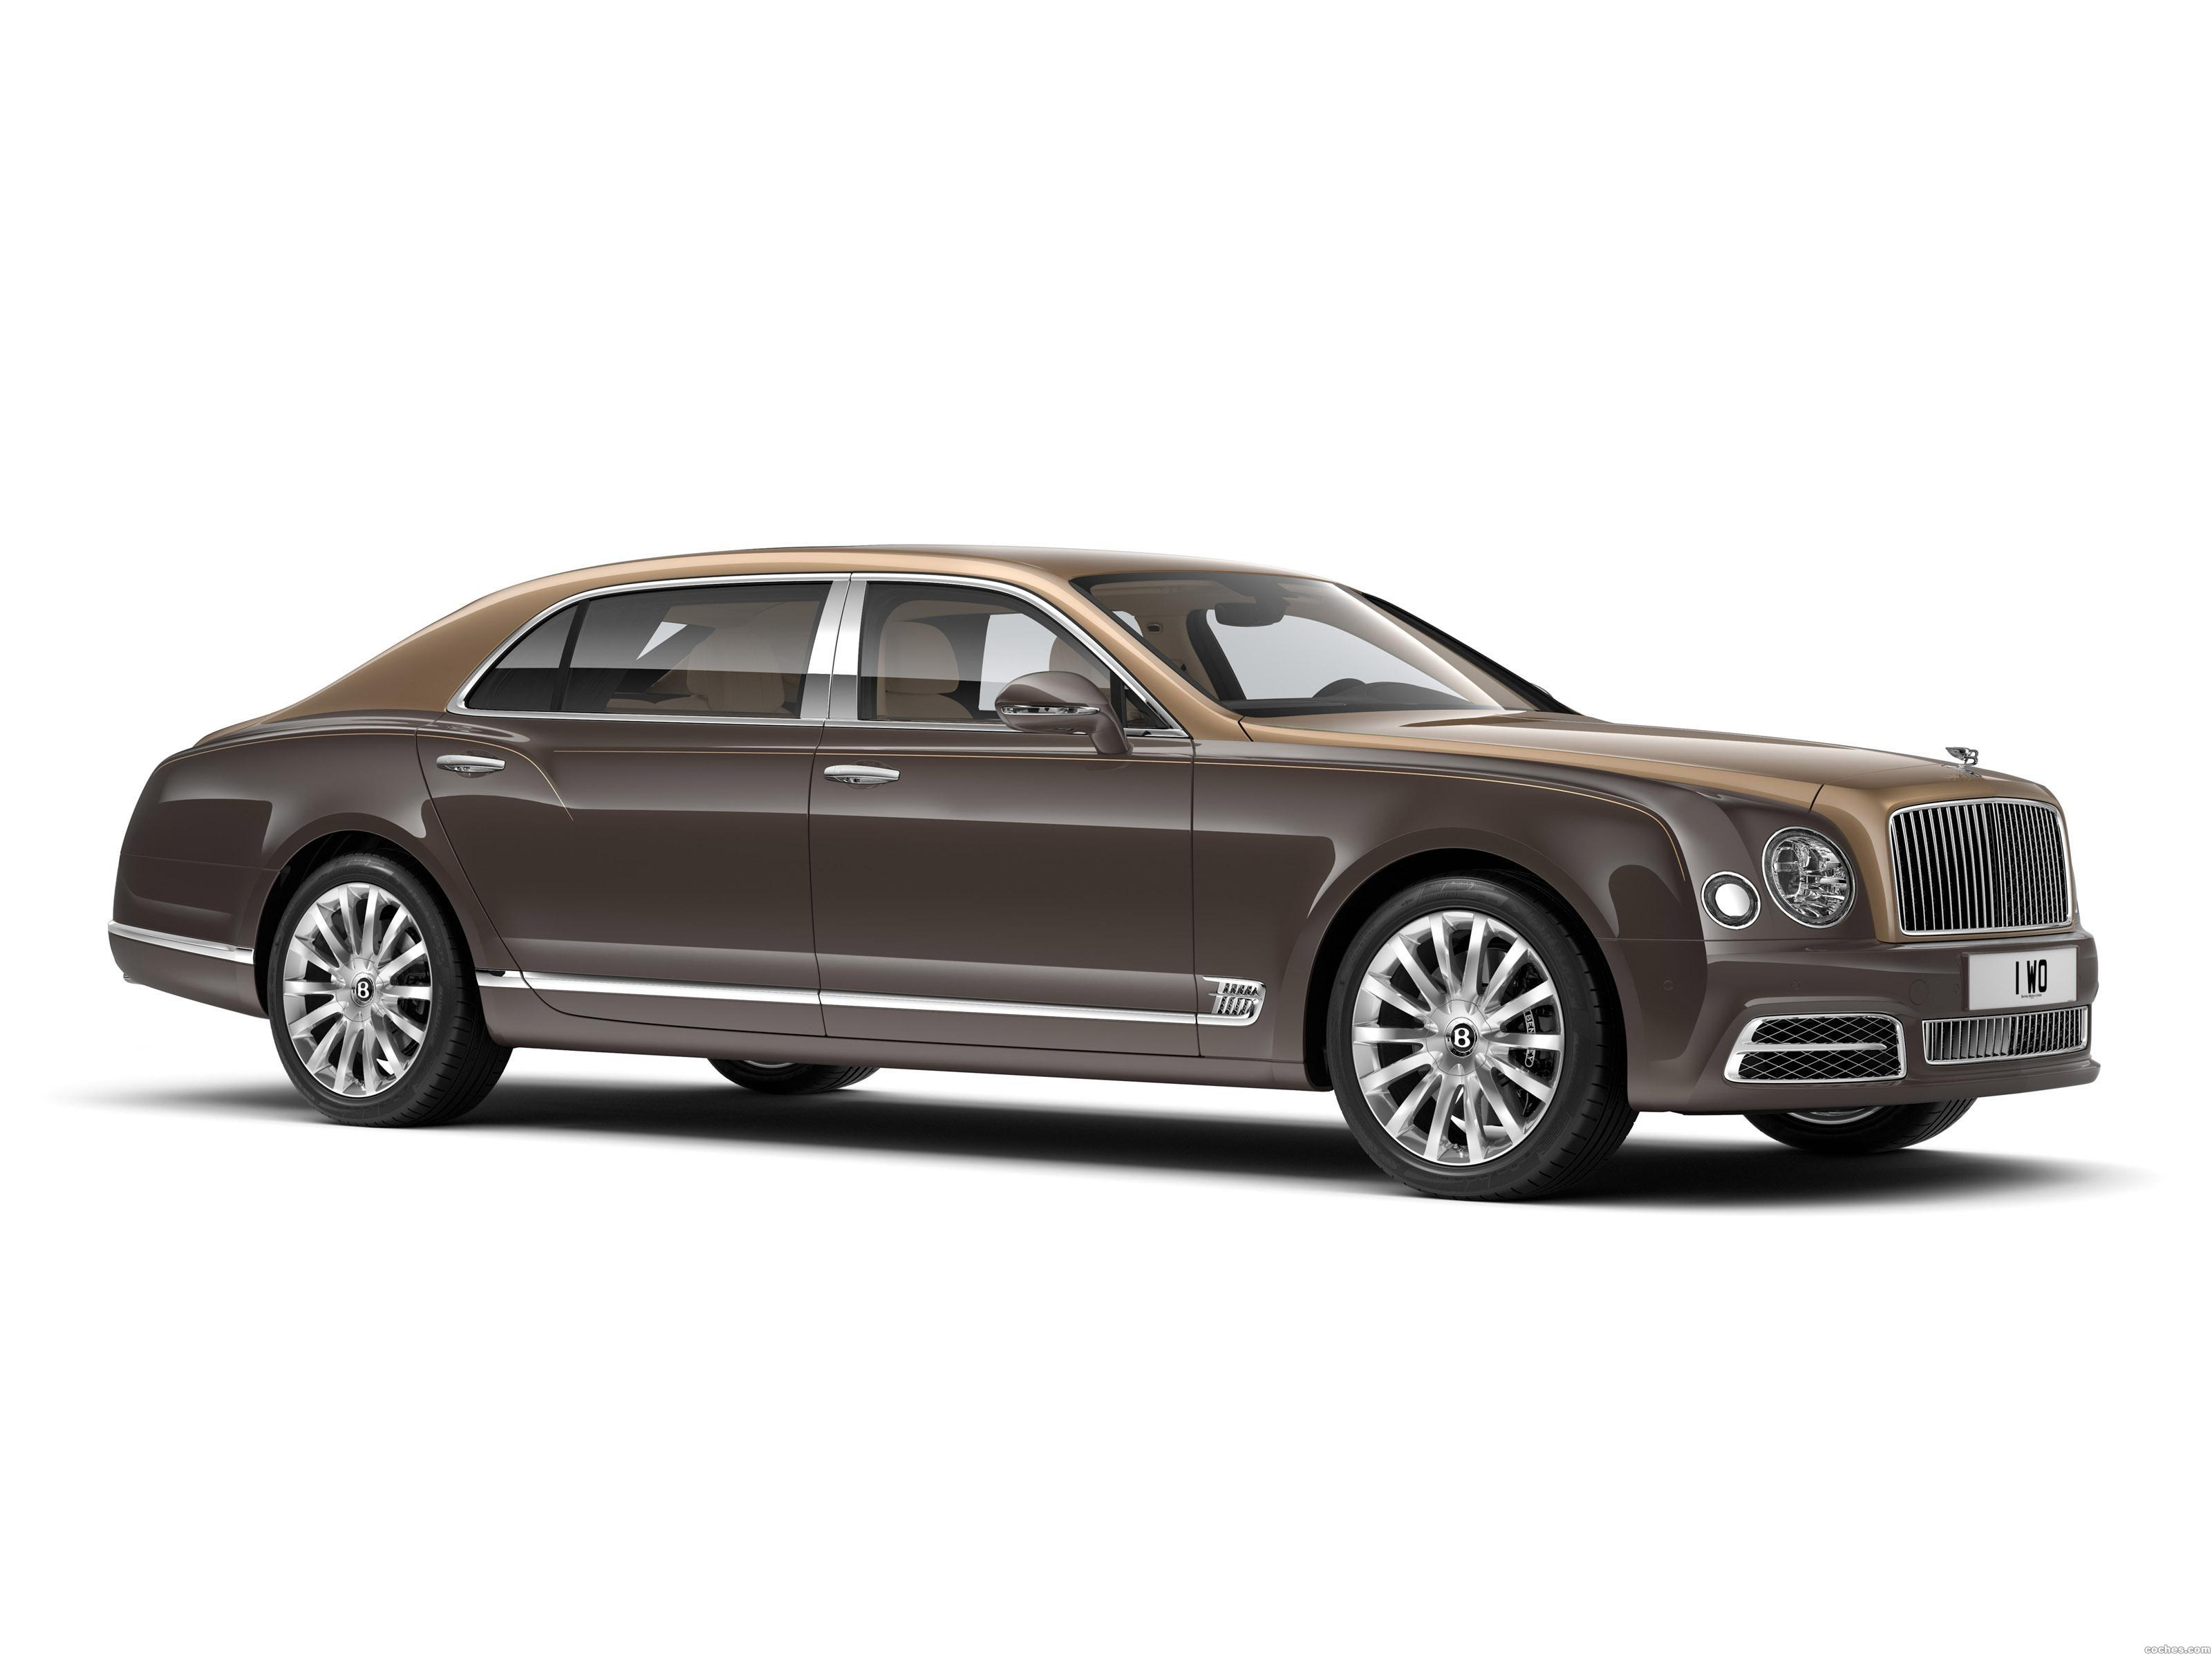 Foto 0 de Bentley Mulsanne Extended Wheelbase First Edition 2016